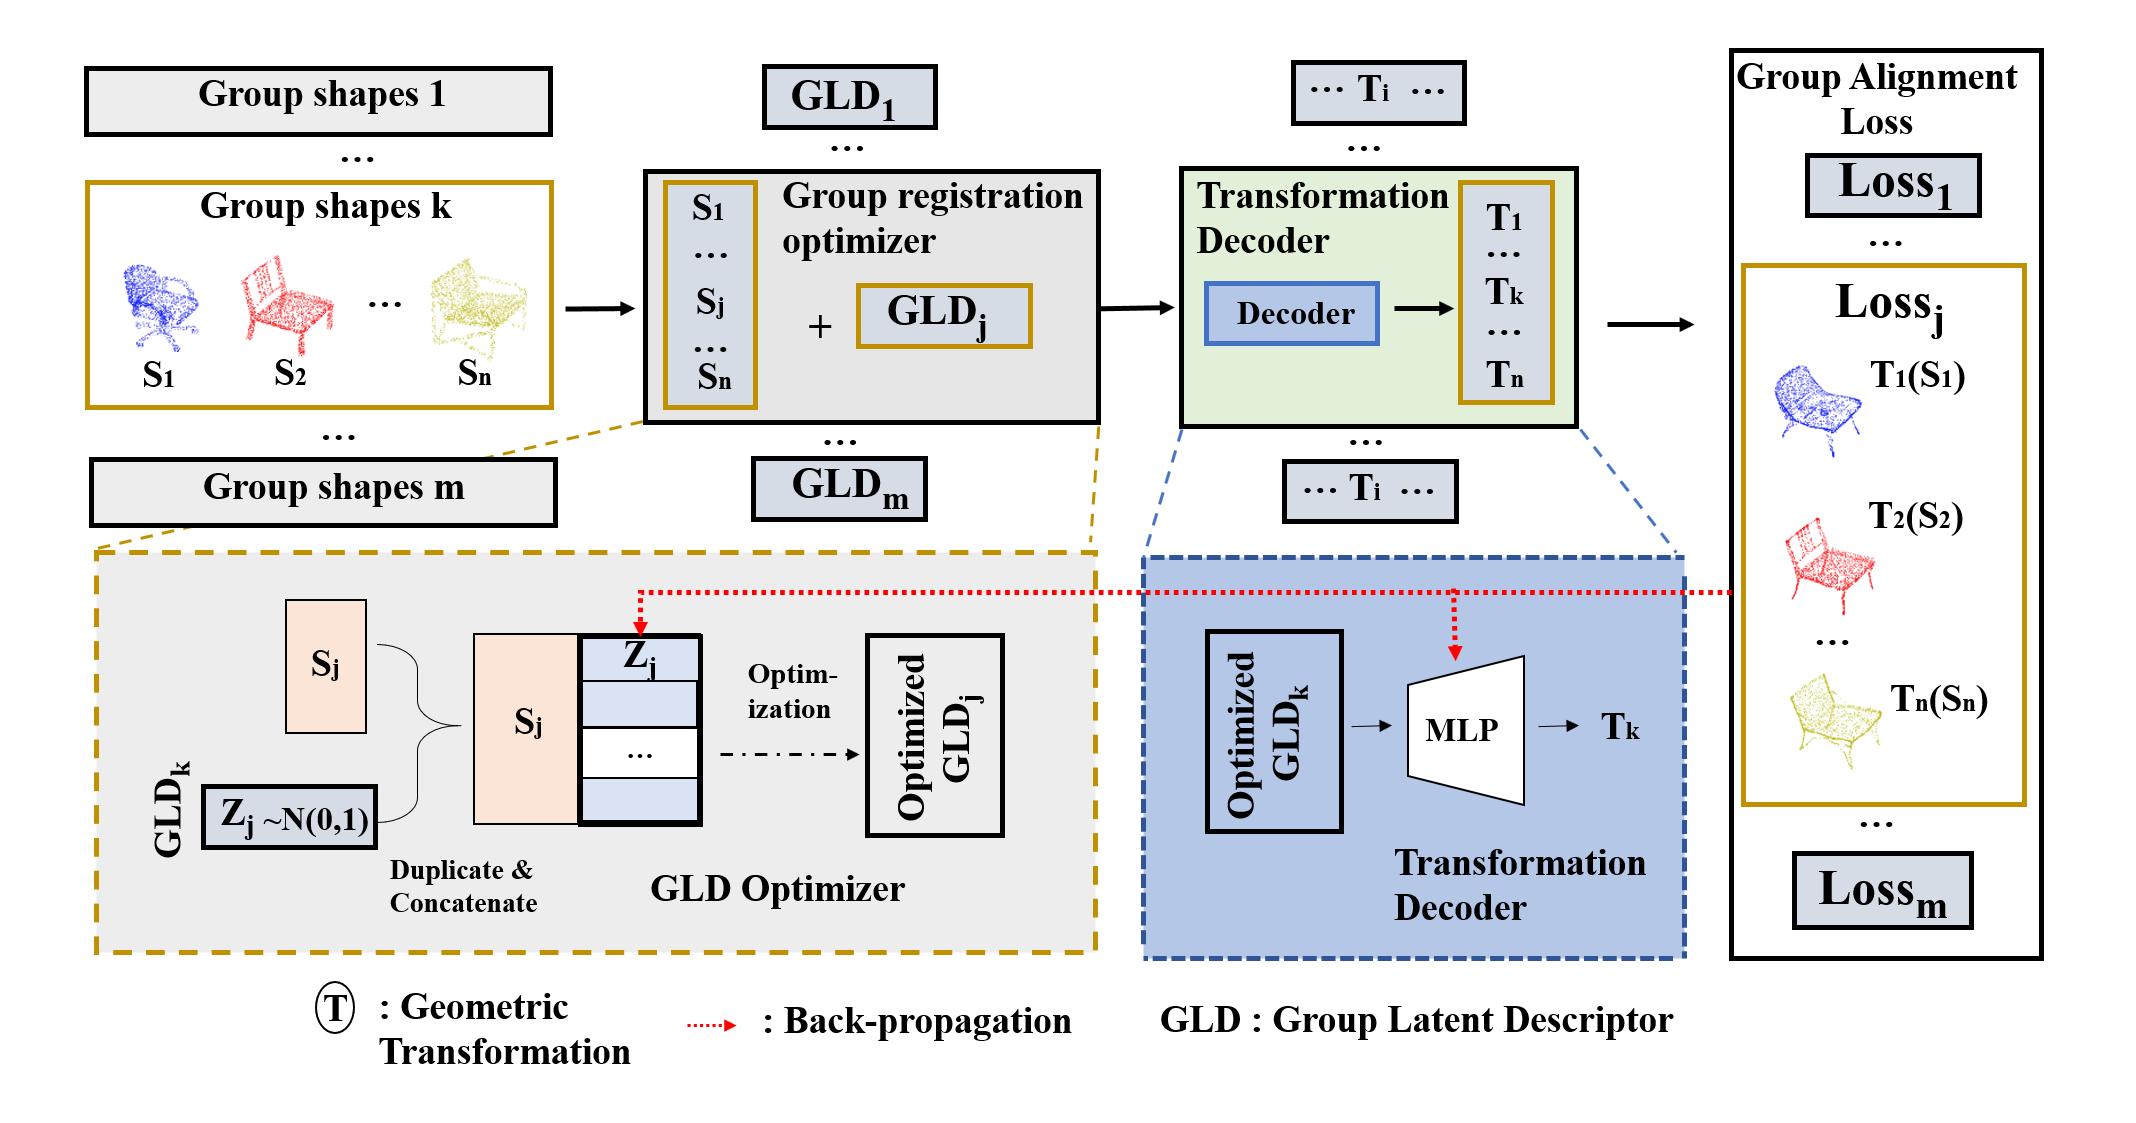 Our pipeline. Our method contains three main components. The first component is a group registration optimizer where the GLDs are optimized from a set of randomly initialized vectors. The second component is the transformation decoder which decodes the GLDs to the desired transformation for each group. The third component is a groupwise alignment loss that measures the similarity among transformed shapes in each group. The communication route in red is the back-propagation route with which the groupwise alignment loss is back-propagated to update the GLDs and the transformation decoder.